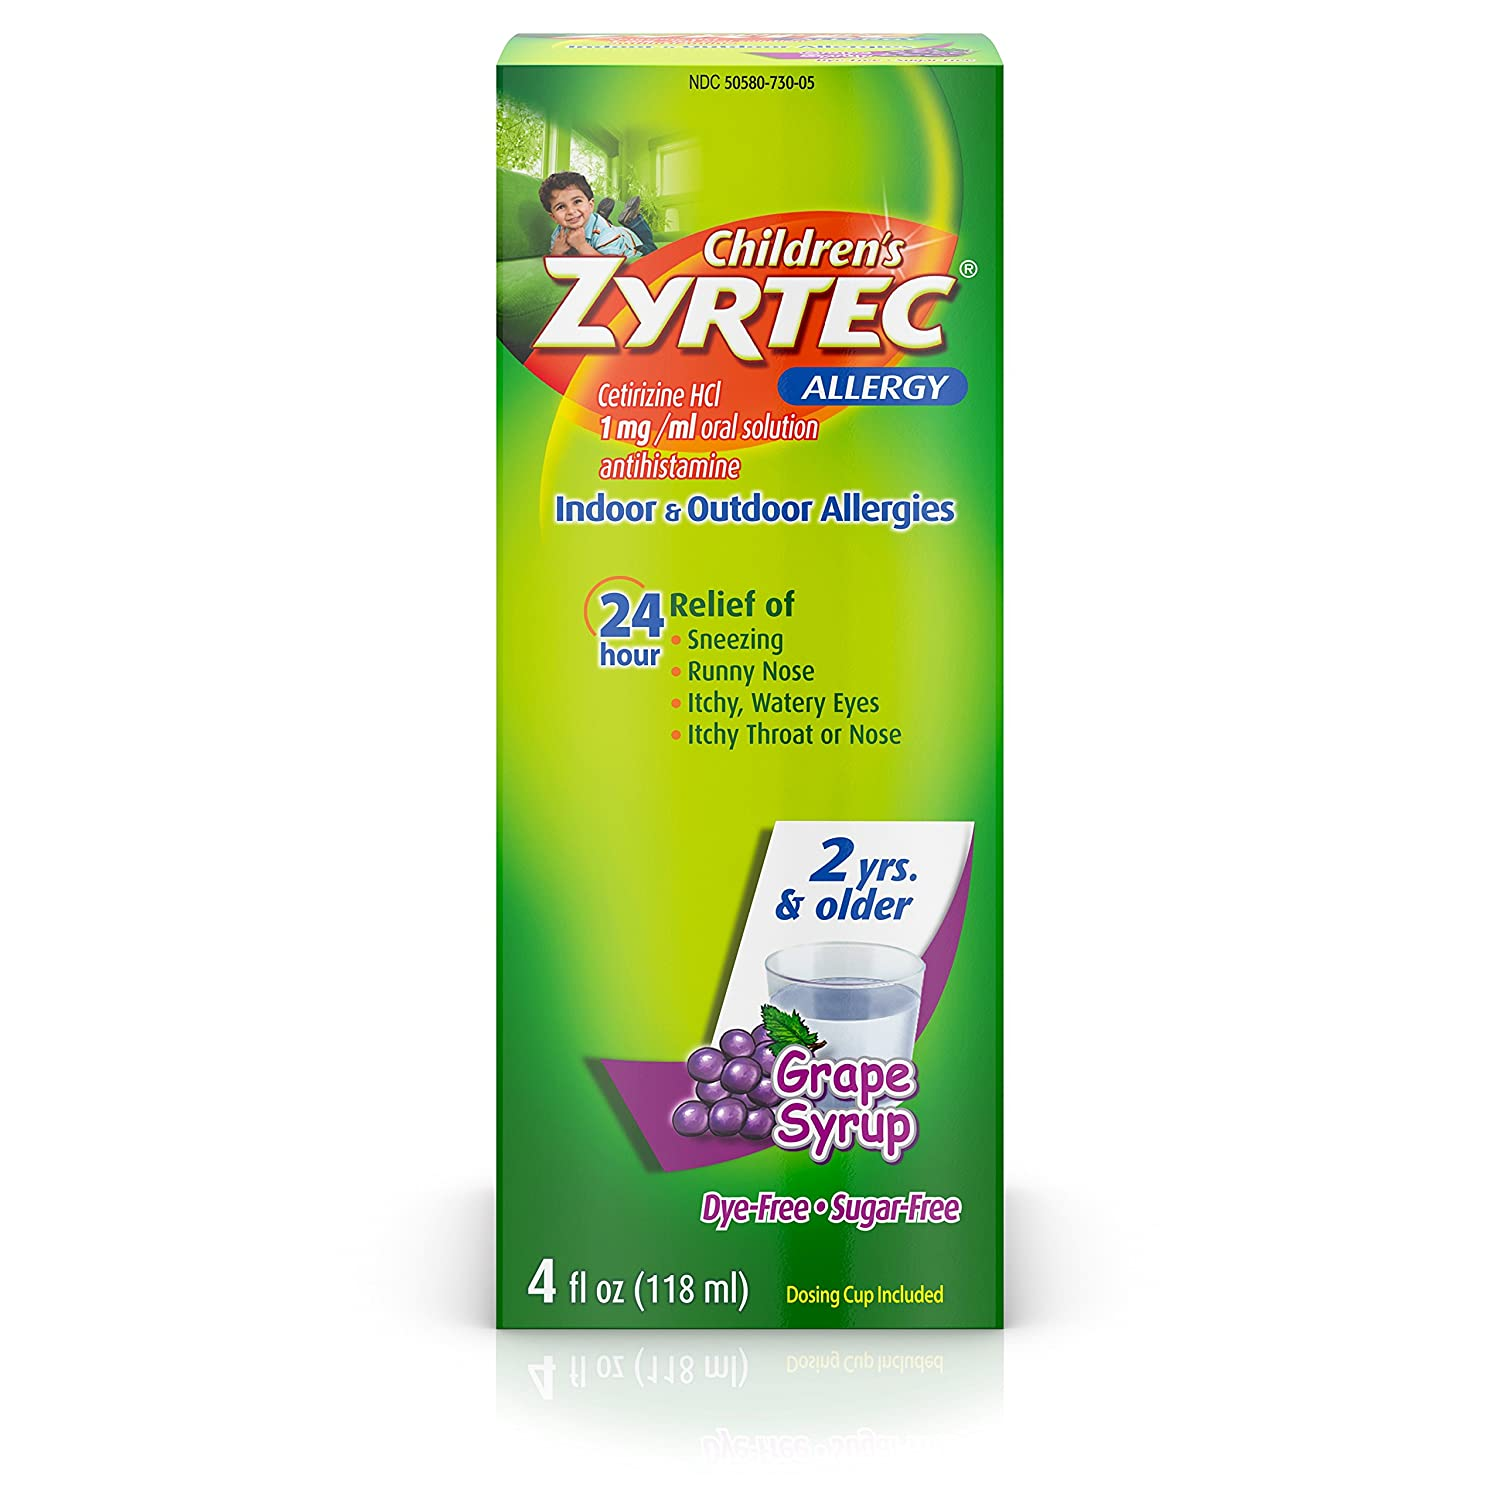 Zyrtec 24 Hr Children's Allergy Syrup with Cetirizine, Dye- & Sugar-Free, Grape Flavor